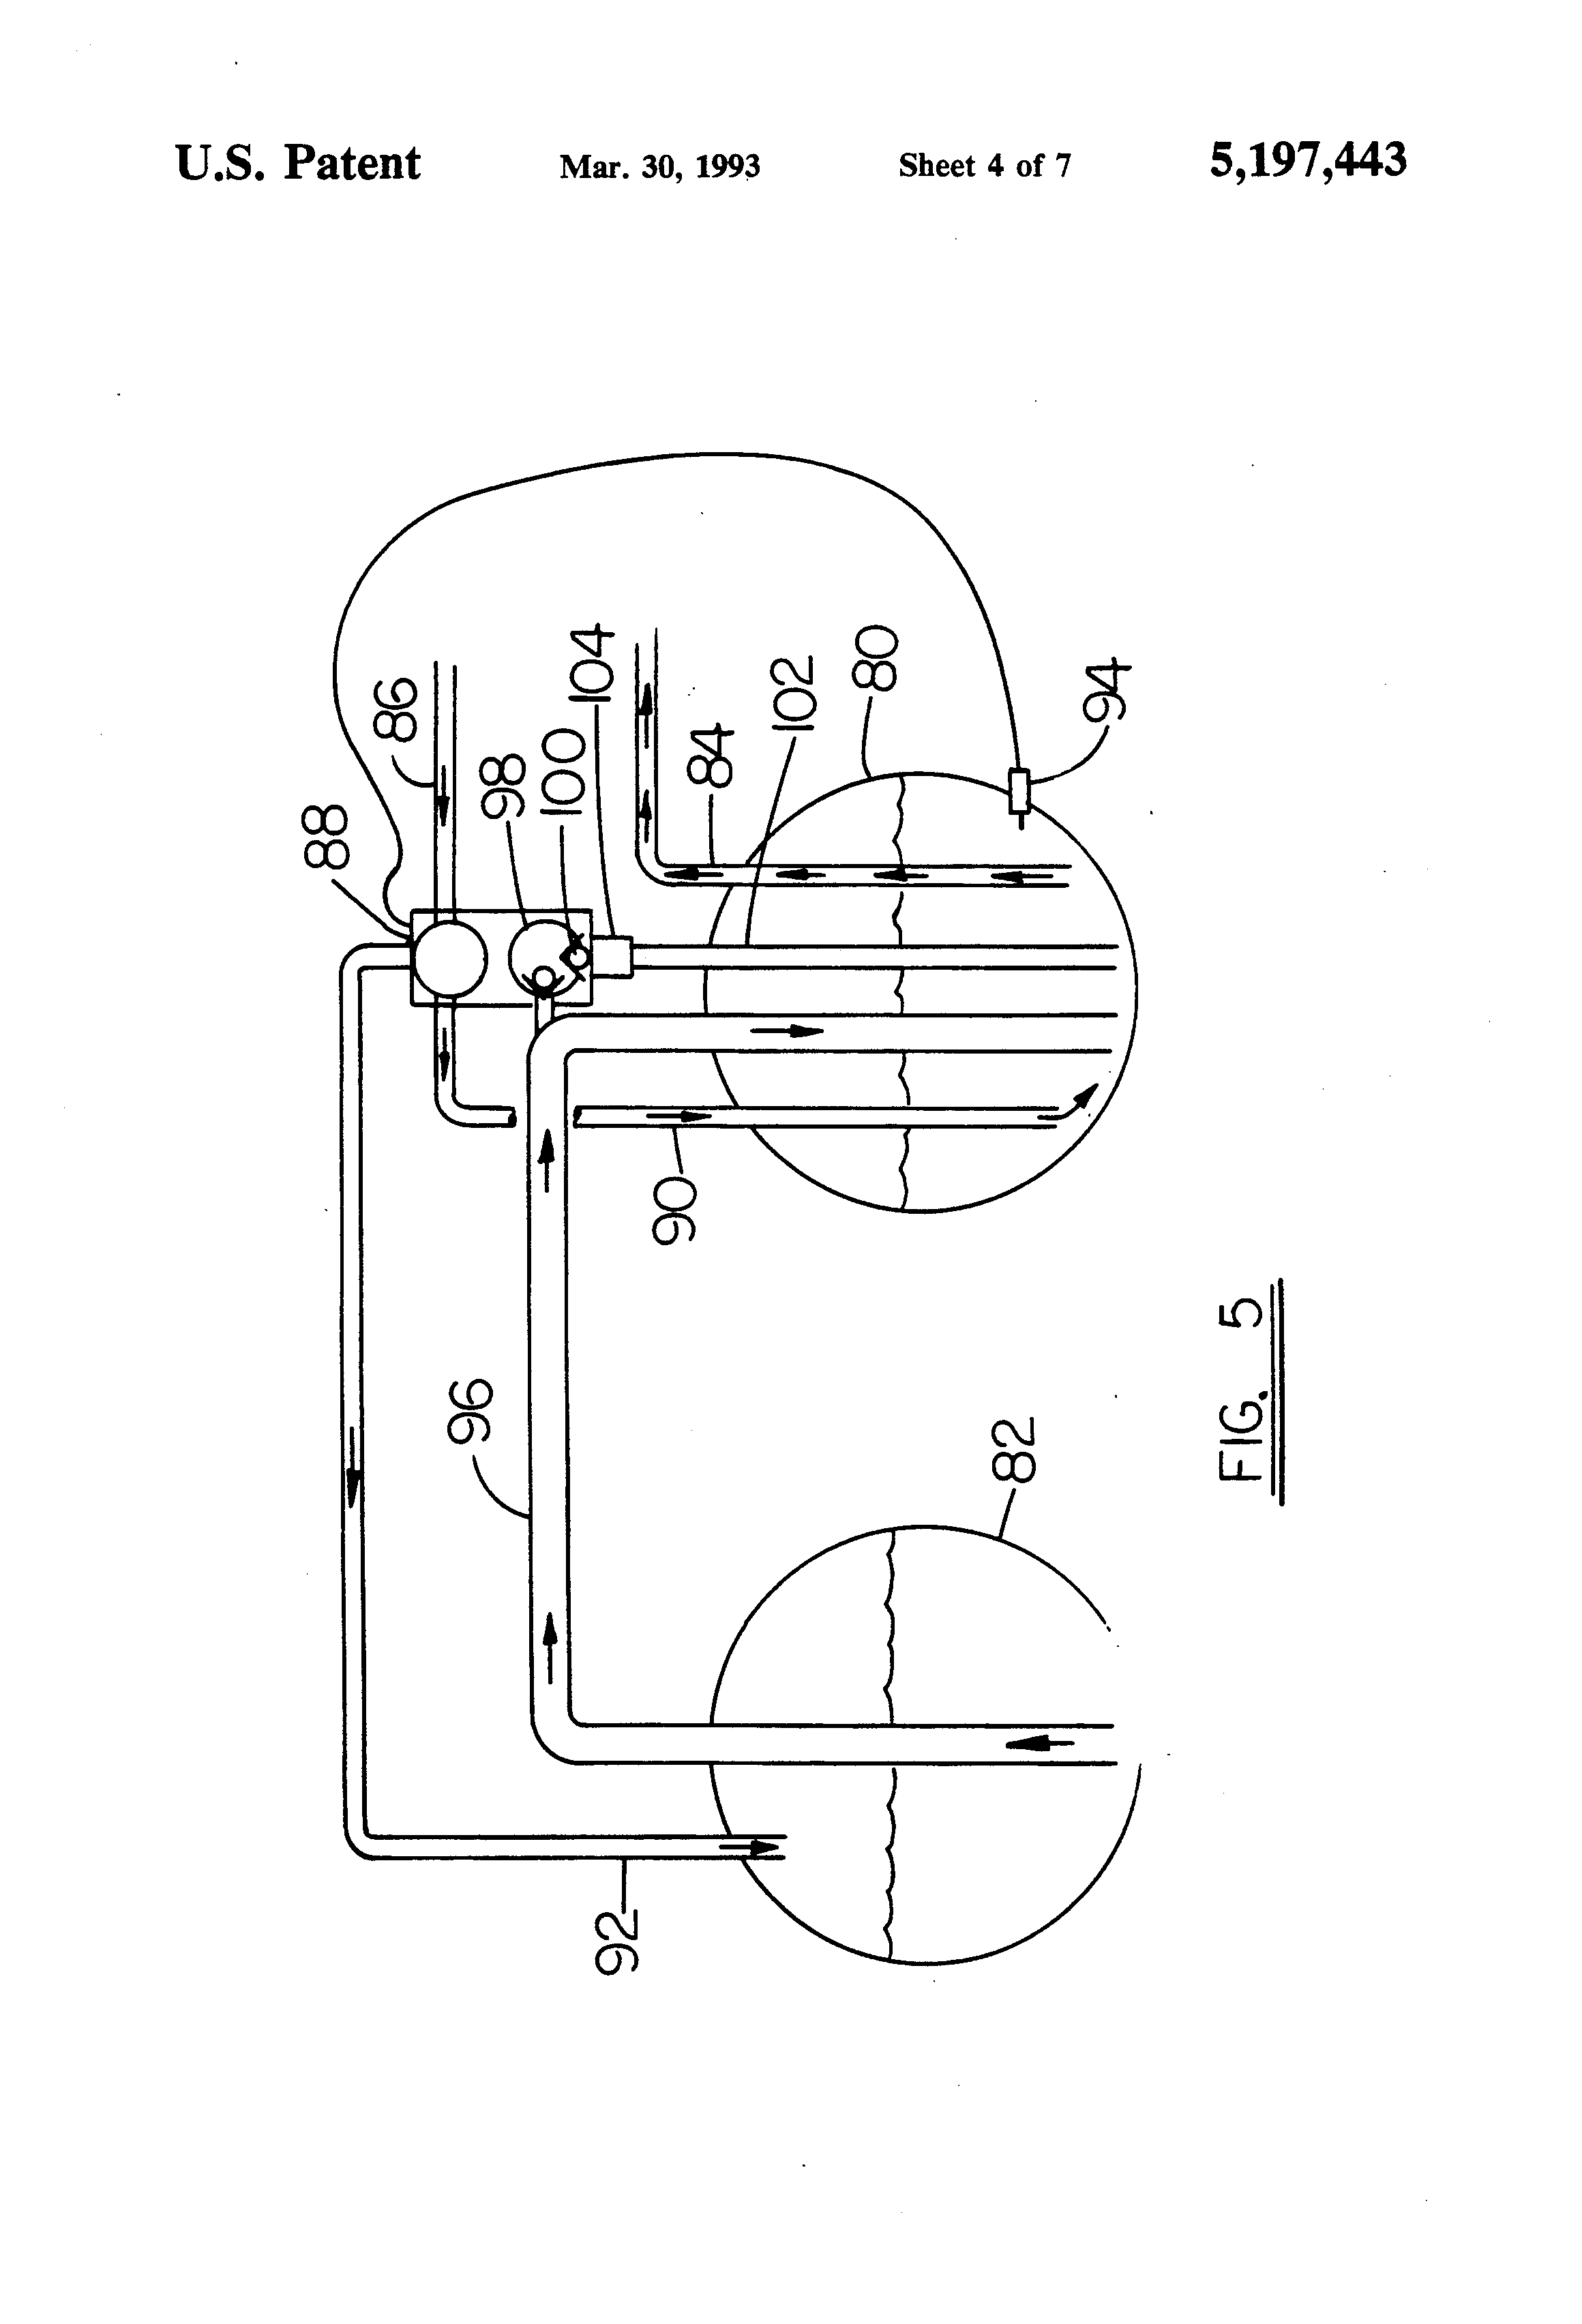 1983 Chevy Saddle Tank Wiring Diagram 37 Images 85 Fuel Us5197443 4 Patent System For Diesel Truck Google Patents Diagrams Color At